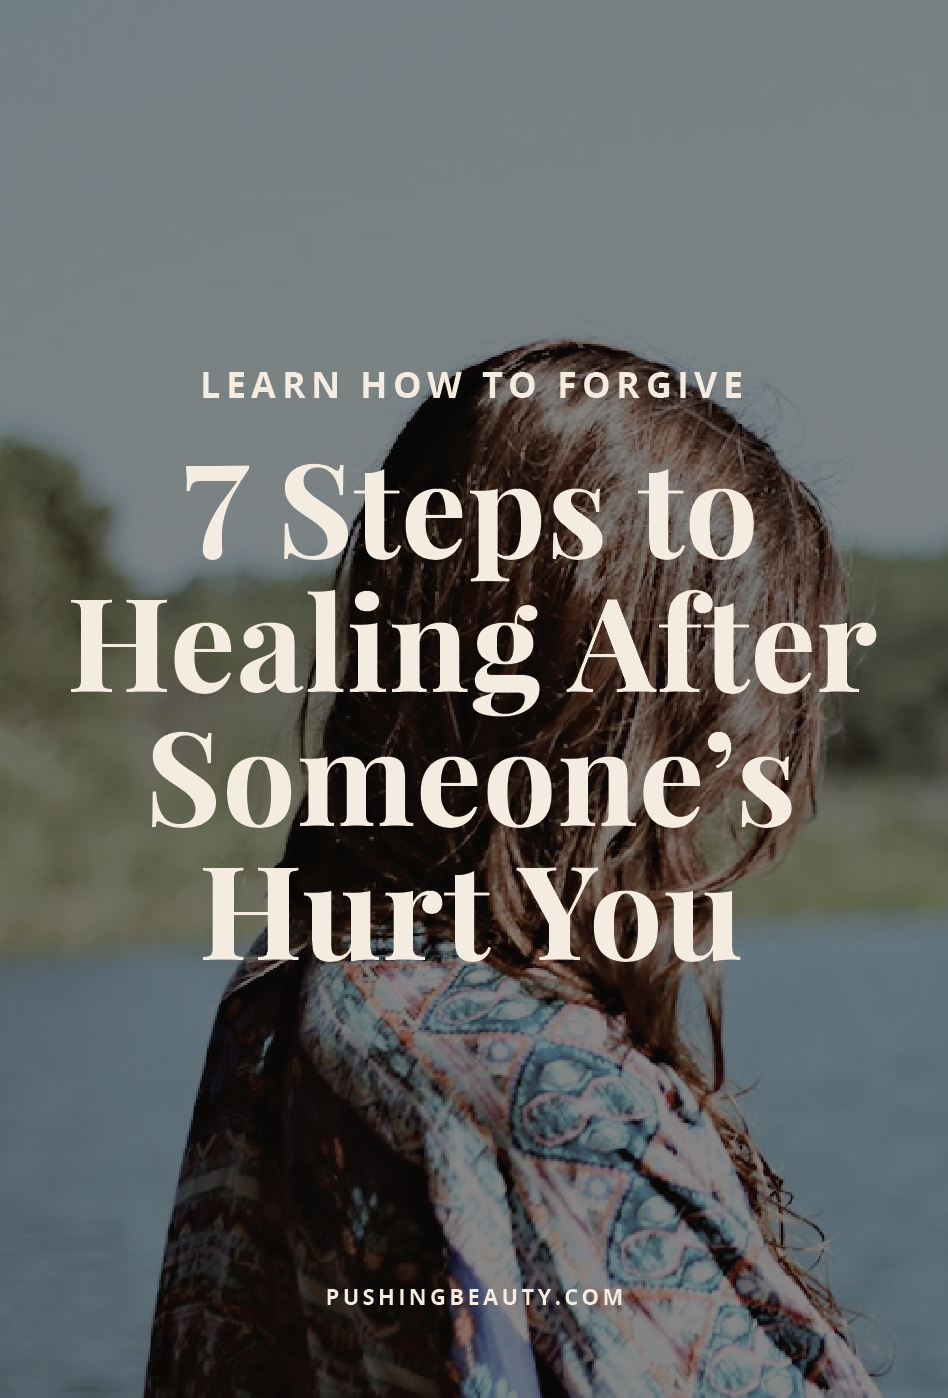 Forgiveness 7 Steps To Healing After Someones Hurt You Pushing